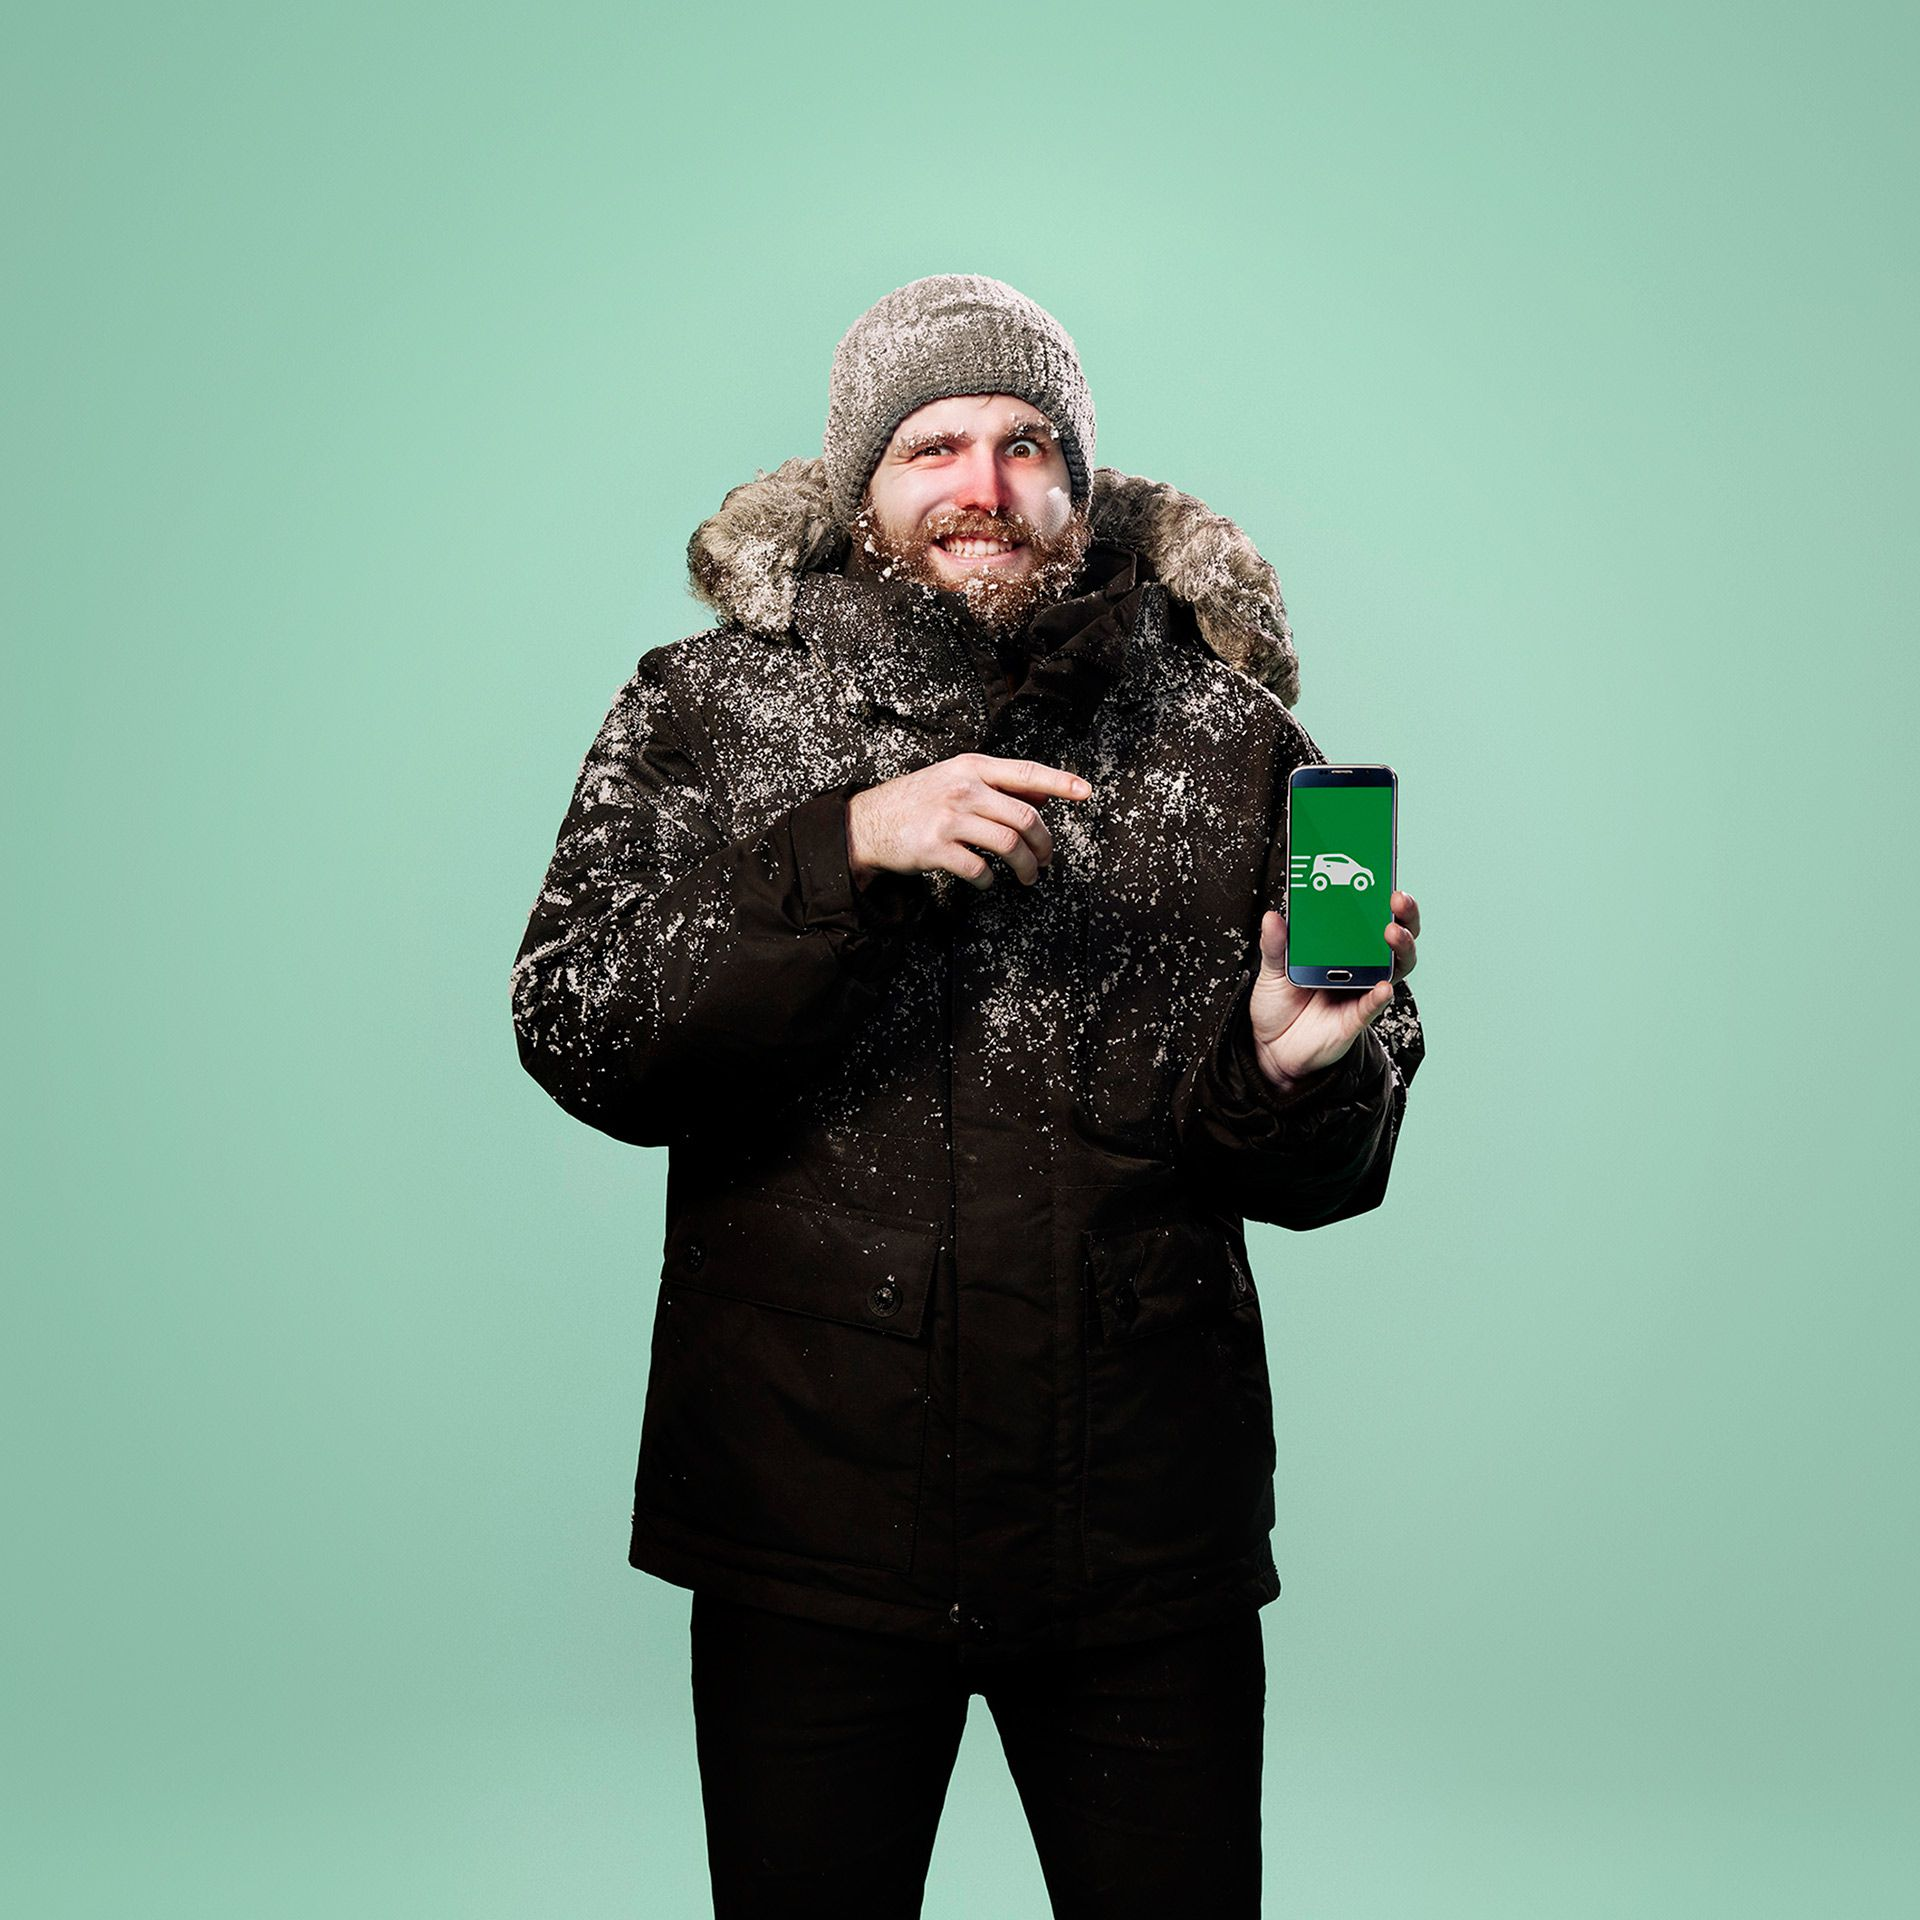 man dressed in winter gear covered in snow red nosed pointing at phone by Jocelyn Michel for Desjardins Assurance with Lg2